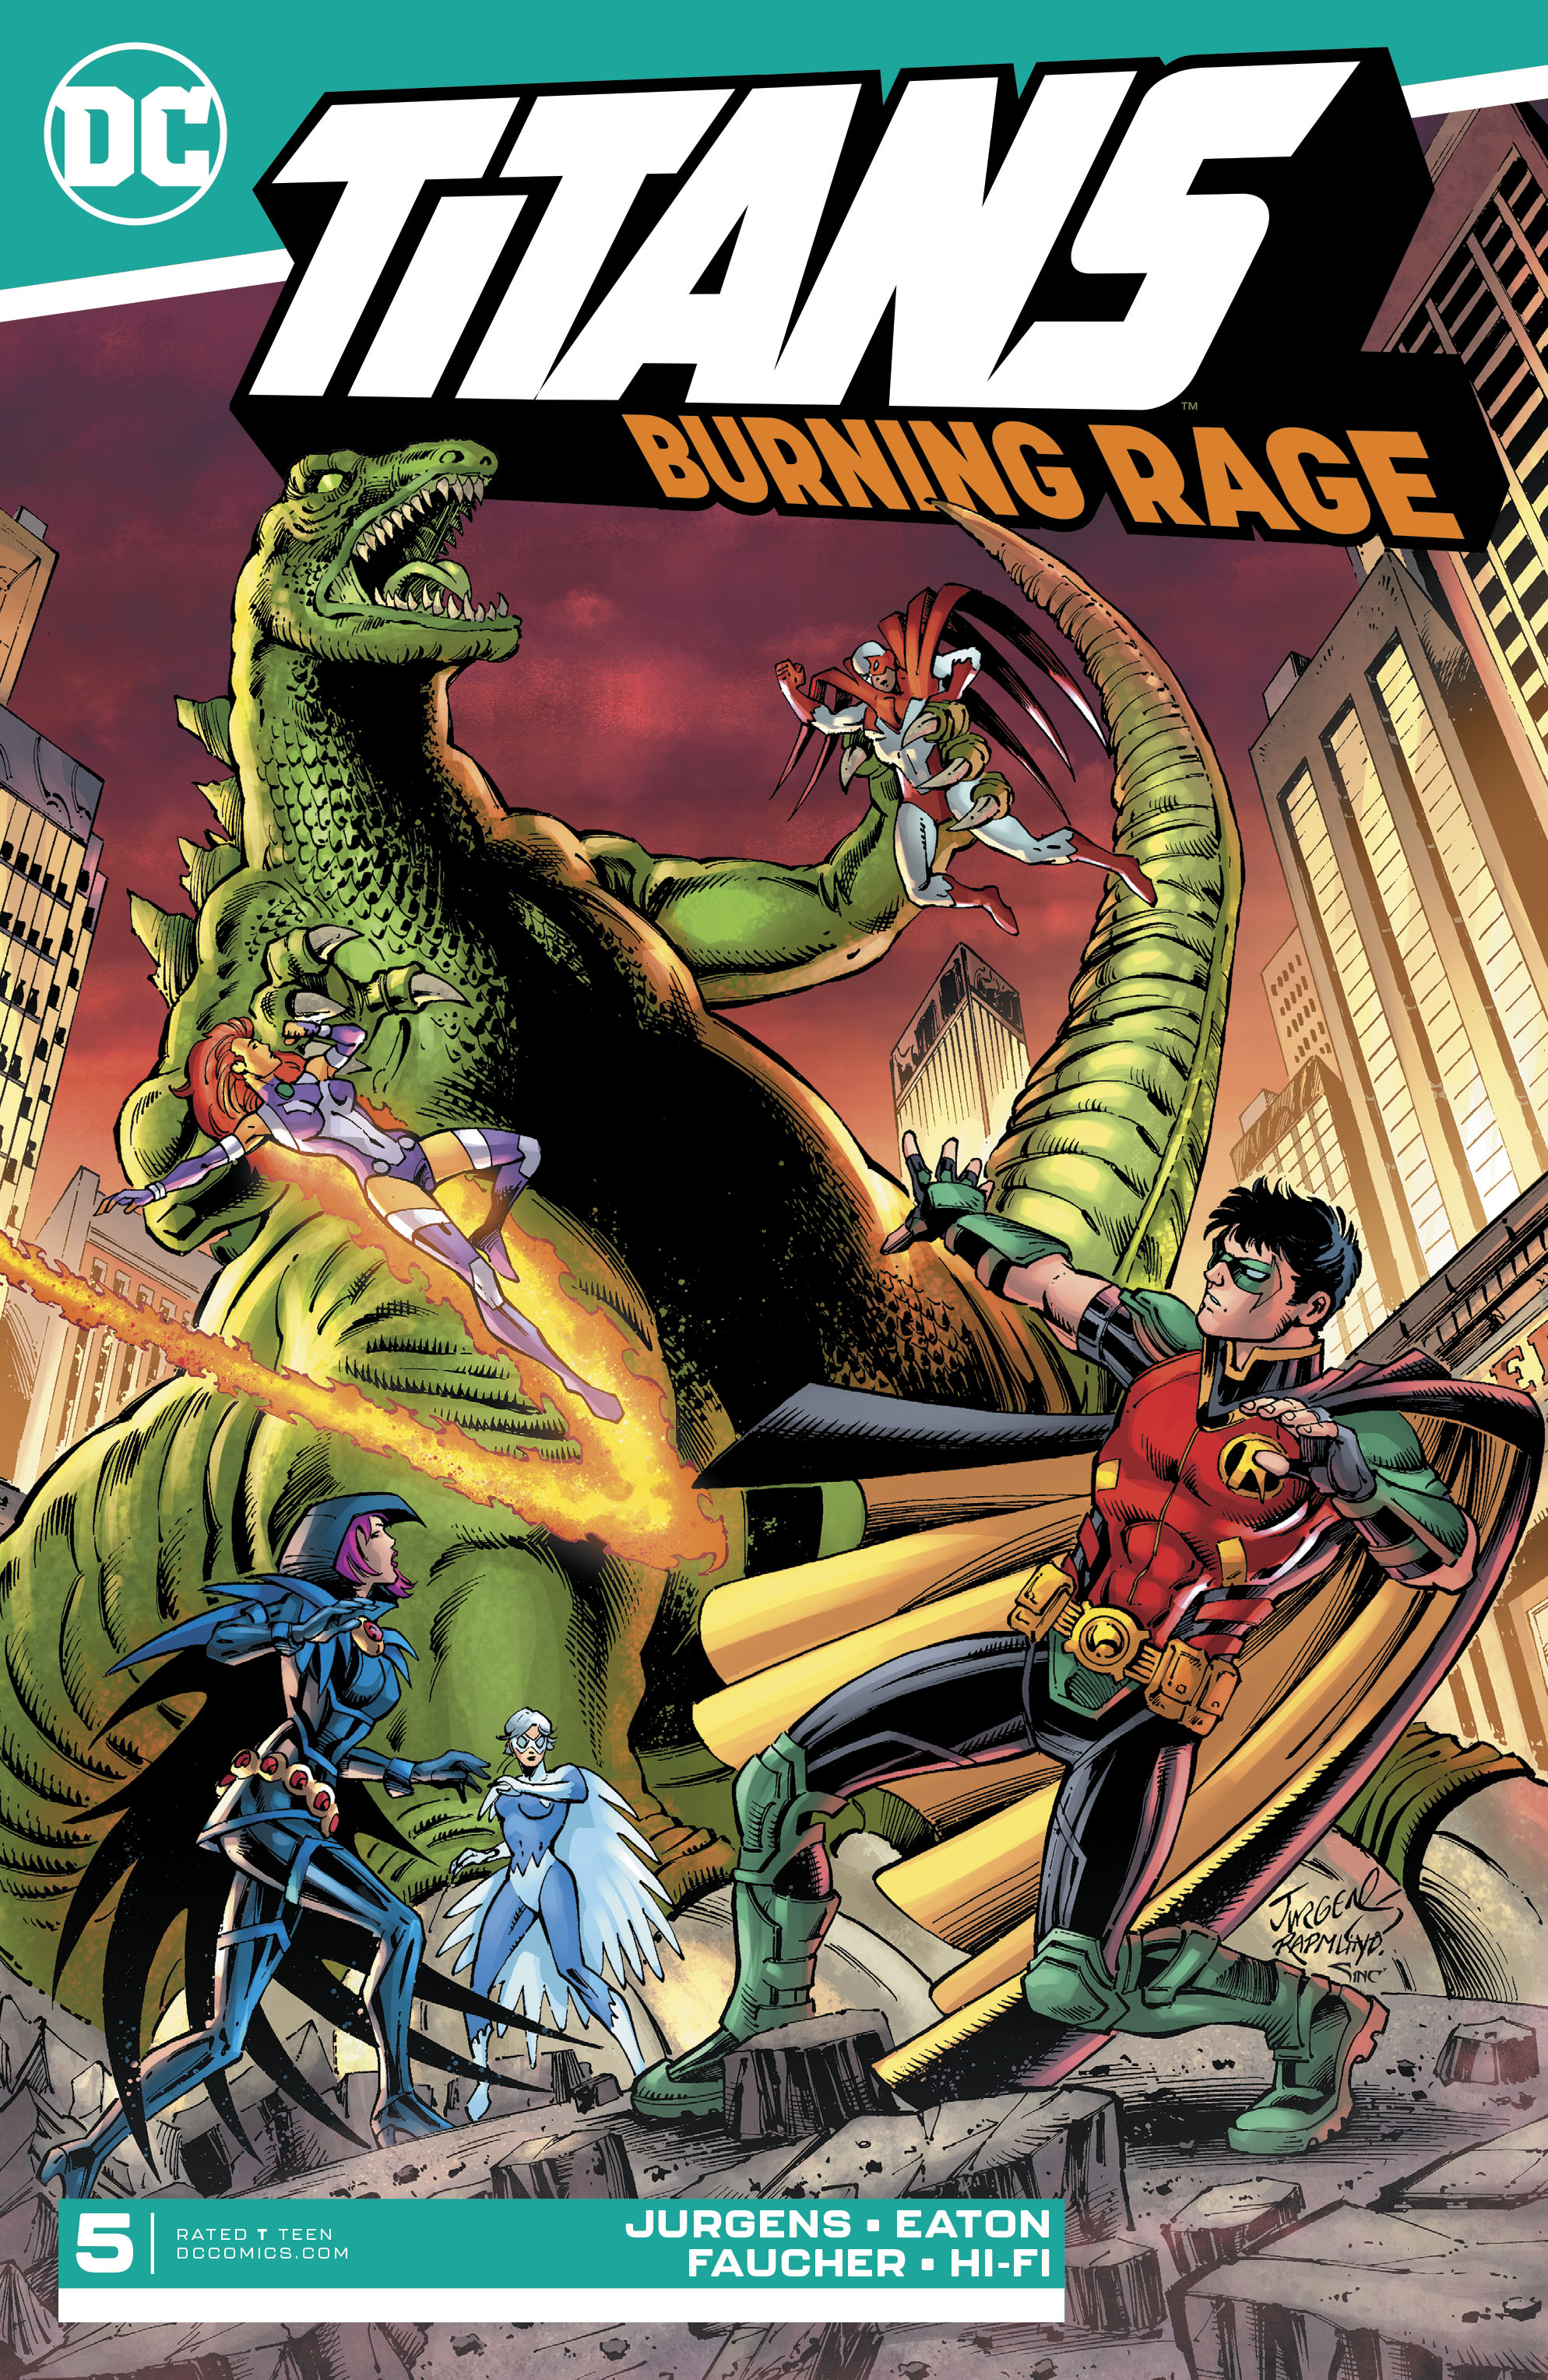 Titans: Burning Rage Vol 1 5